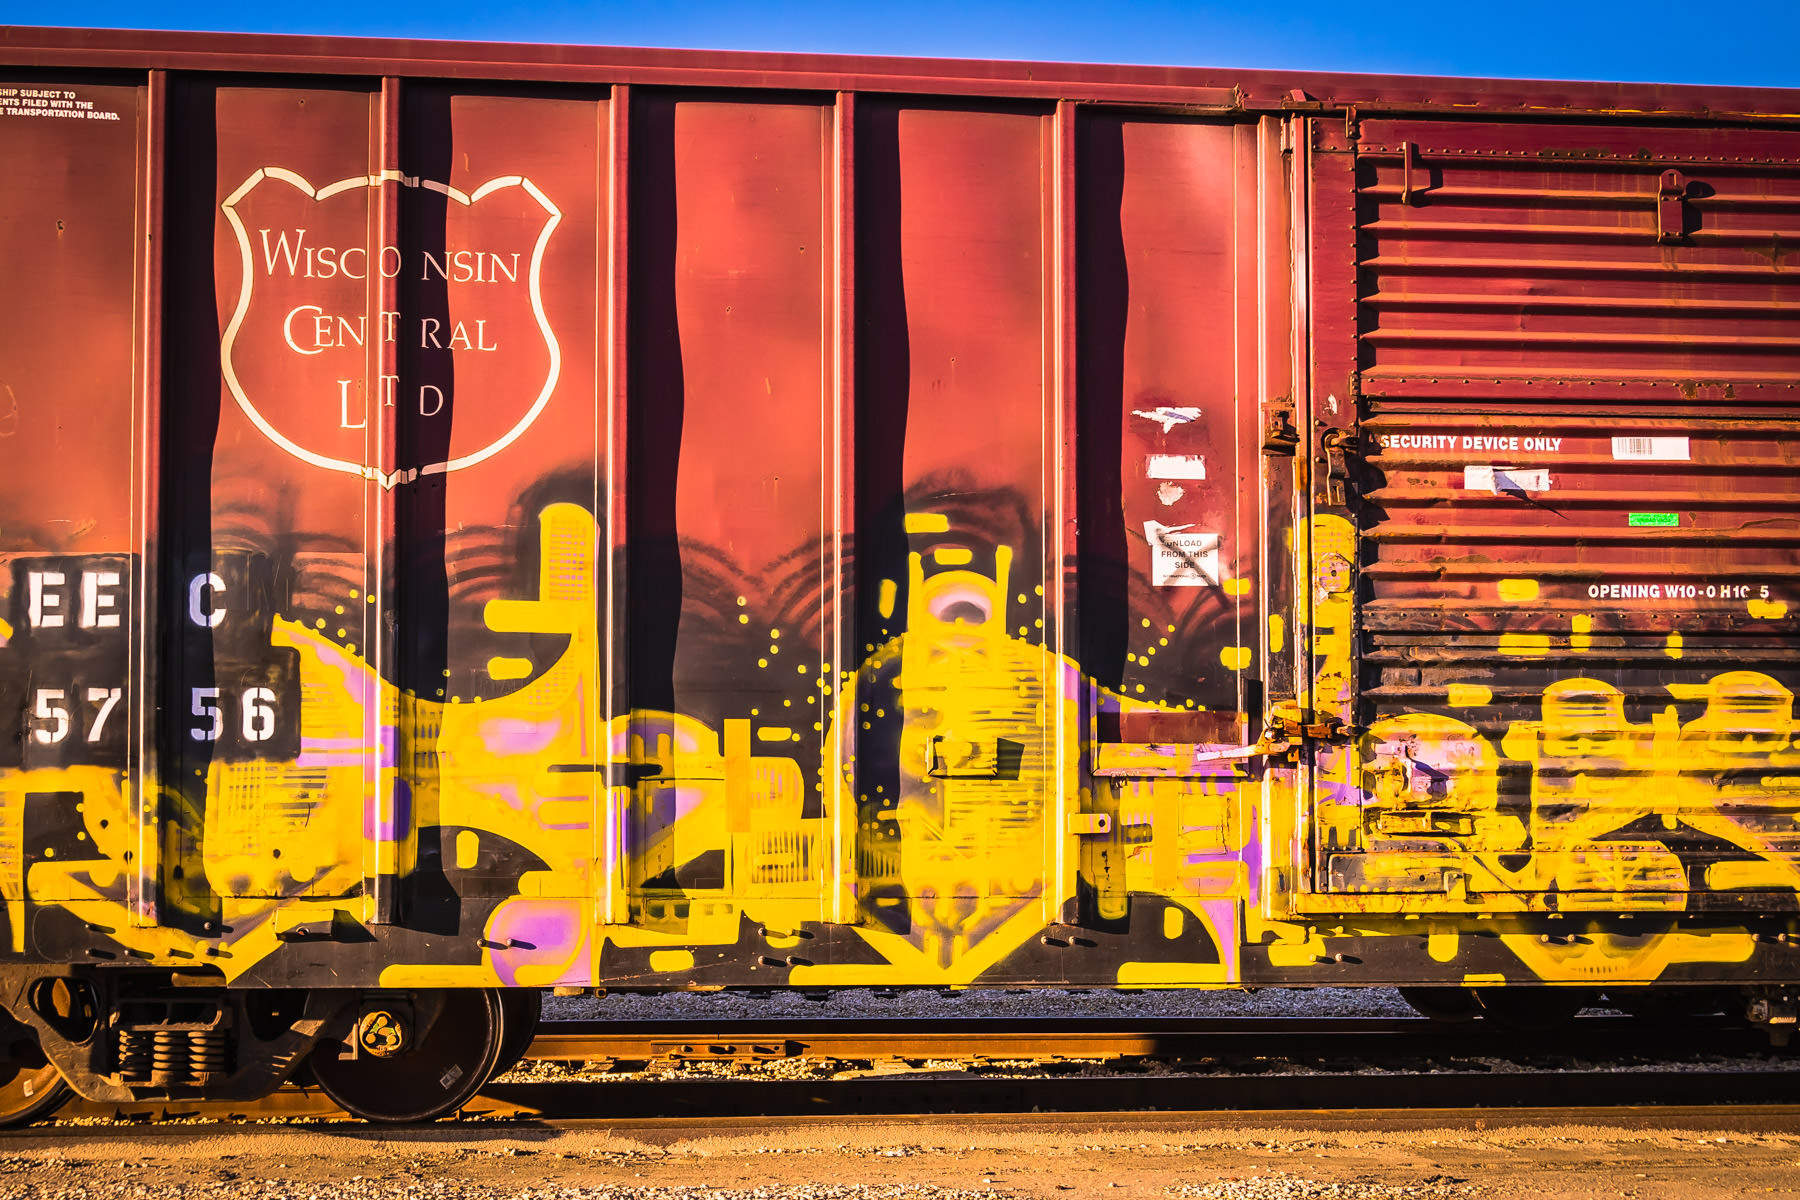 A graffiti-festooned boxcar of the Wisconsin Central Ltd. railroad, spotted in a Galveston, Texas, rail yard.